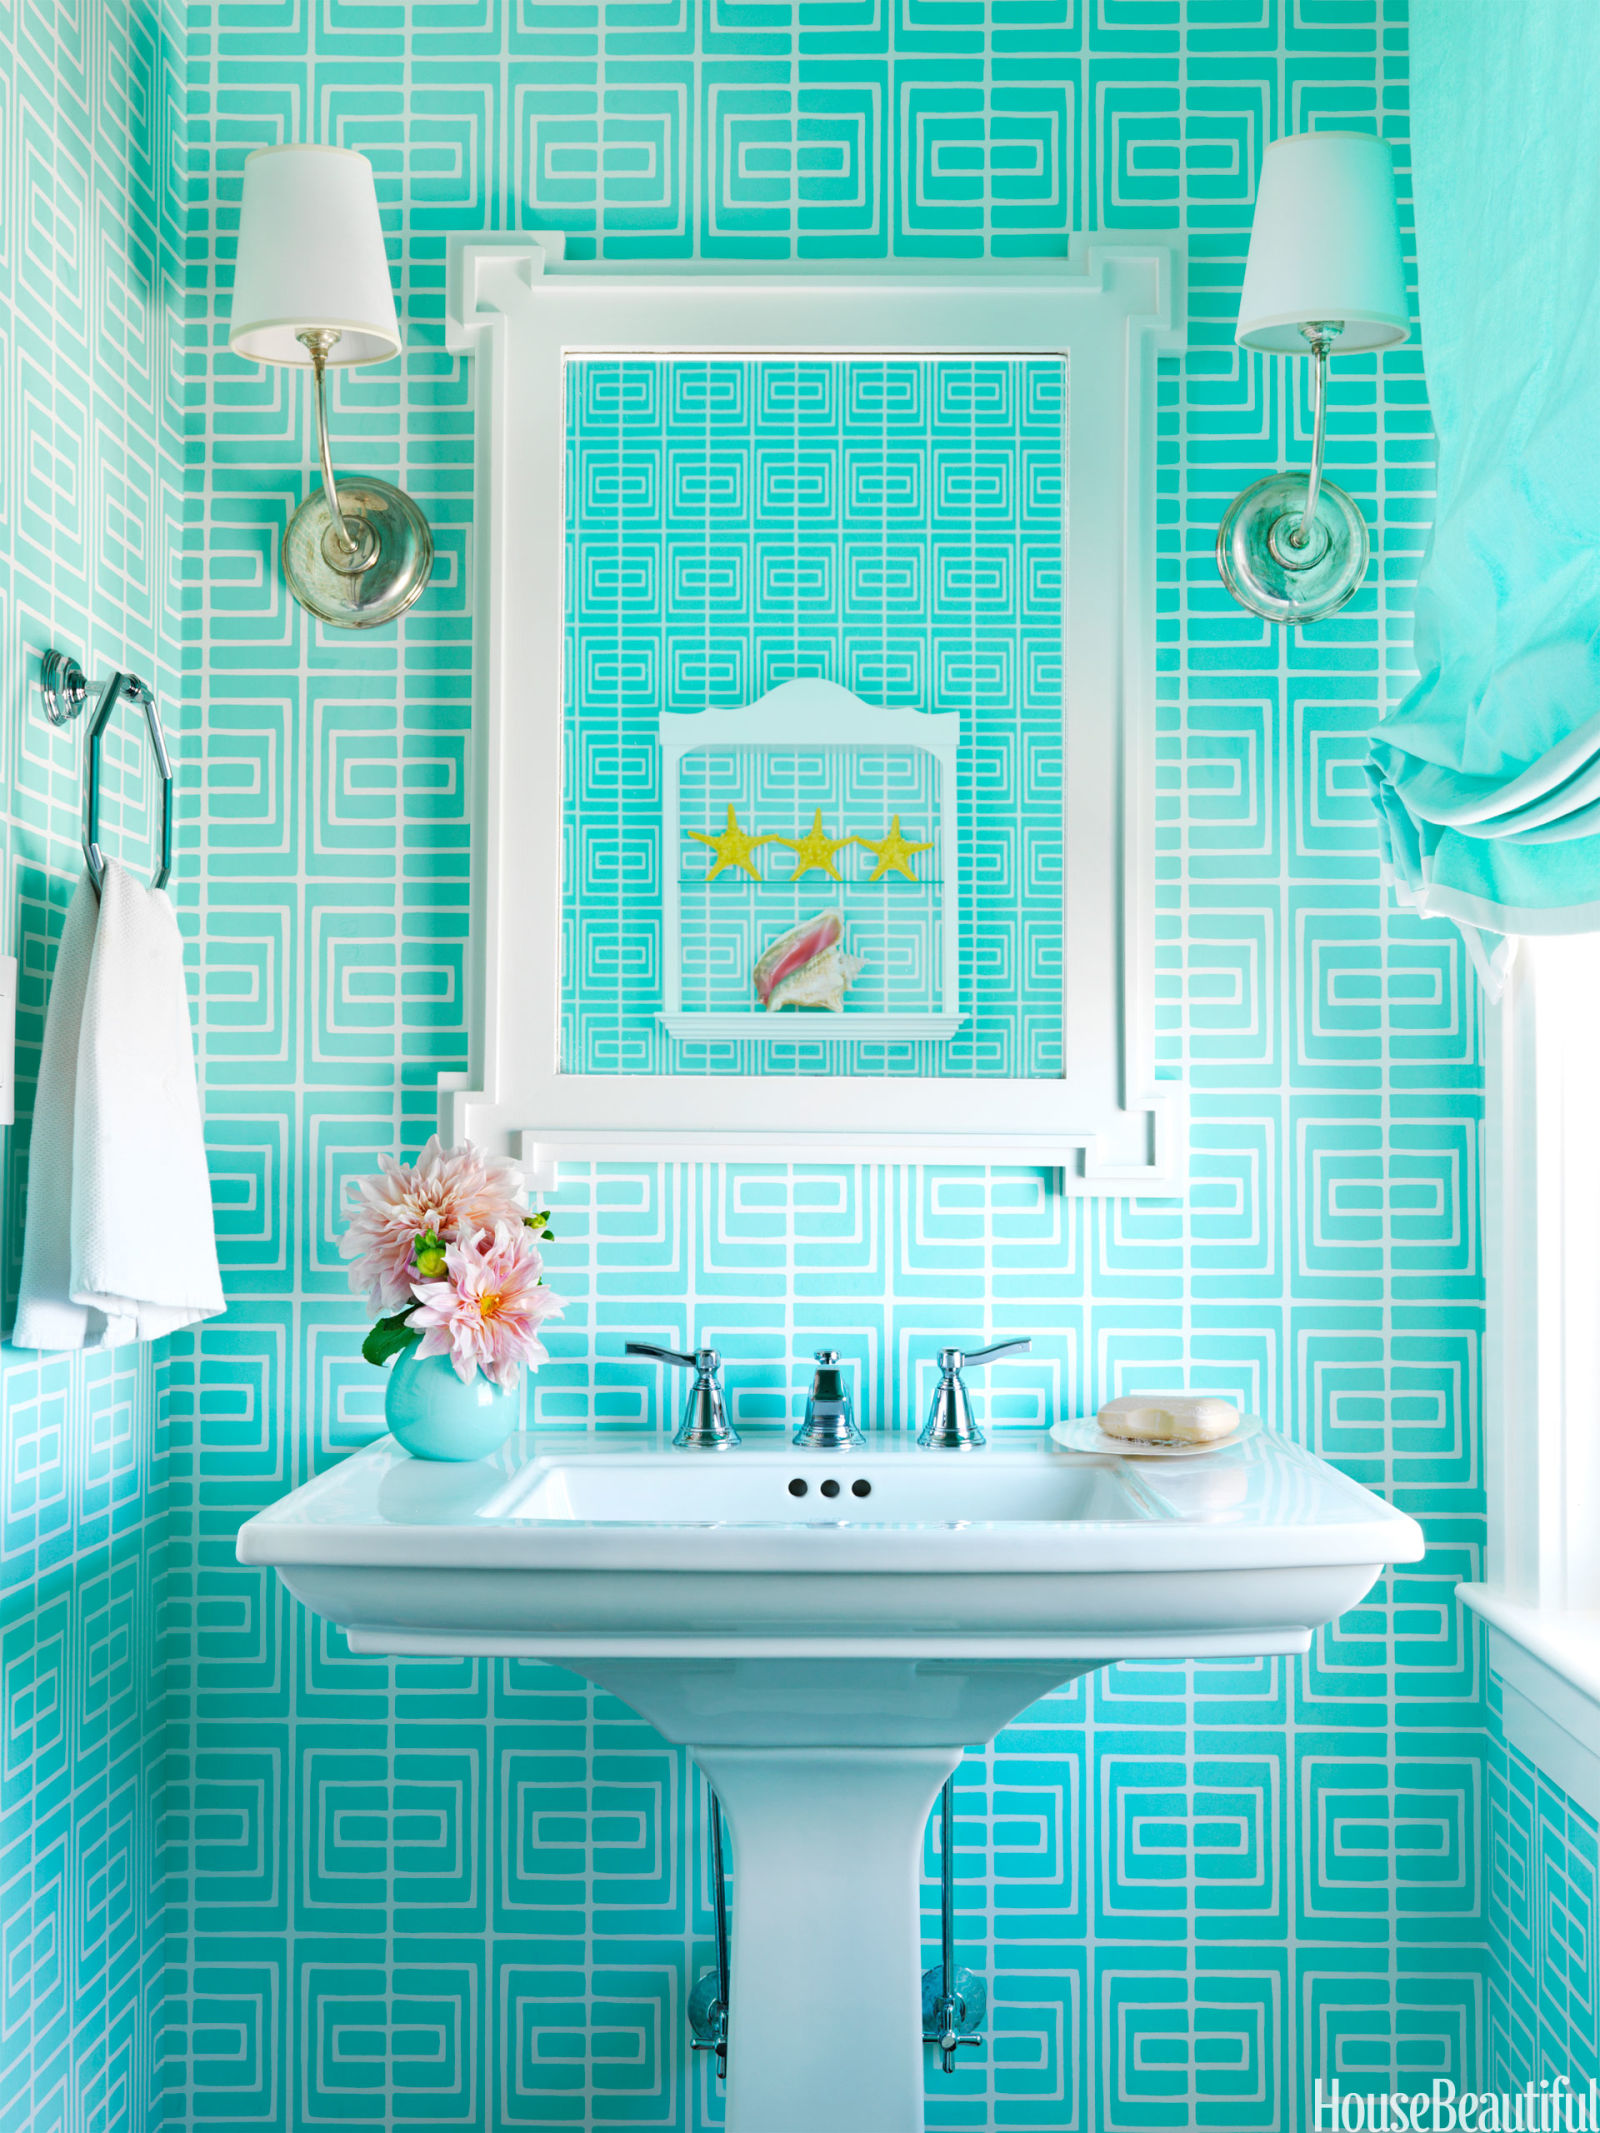 Color decorating ideas colorful interior design for Colorful bathroom decor